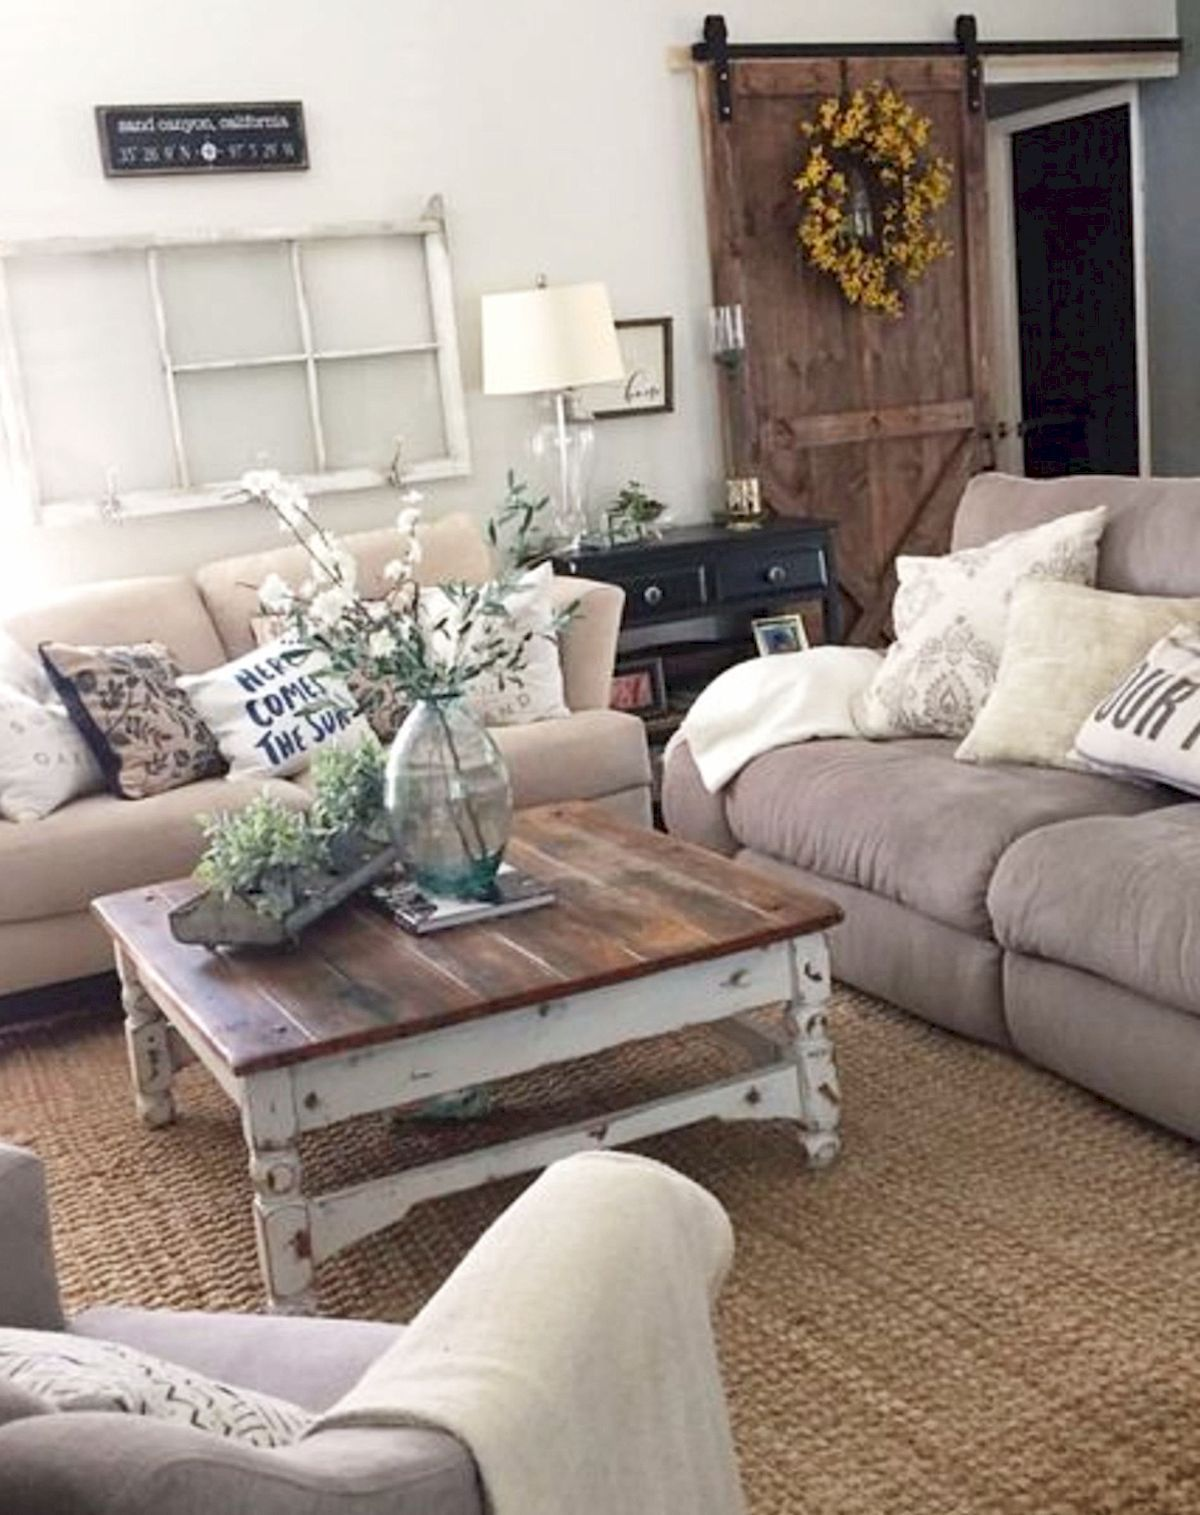 45 Rustic Farmhouse Living Room Decor Ideas Http Urzulahouse Info 45 Rustic Farm House Living Room Rustic Farmhouse Living Room Farmhouse Decor Living Room